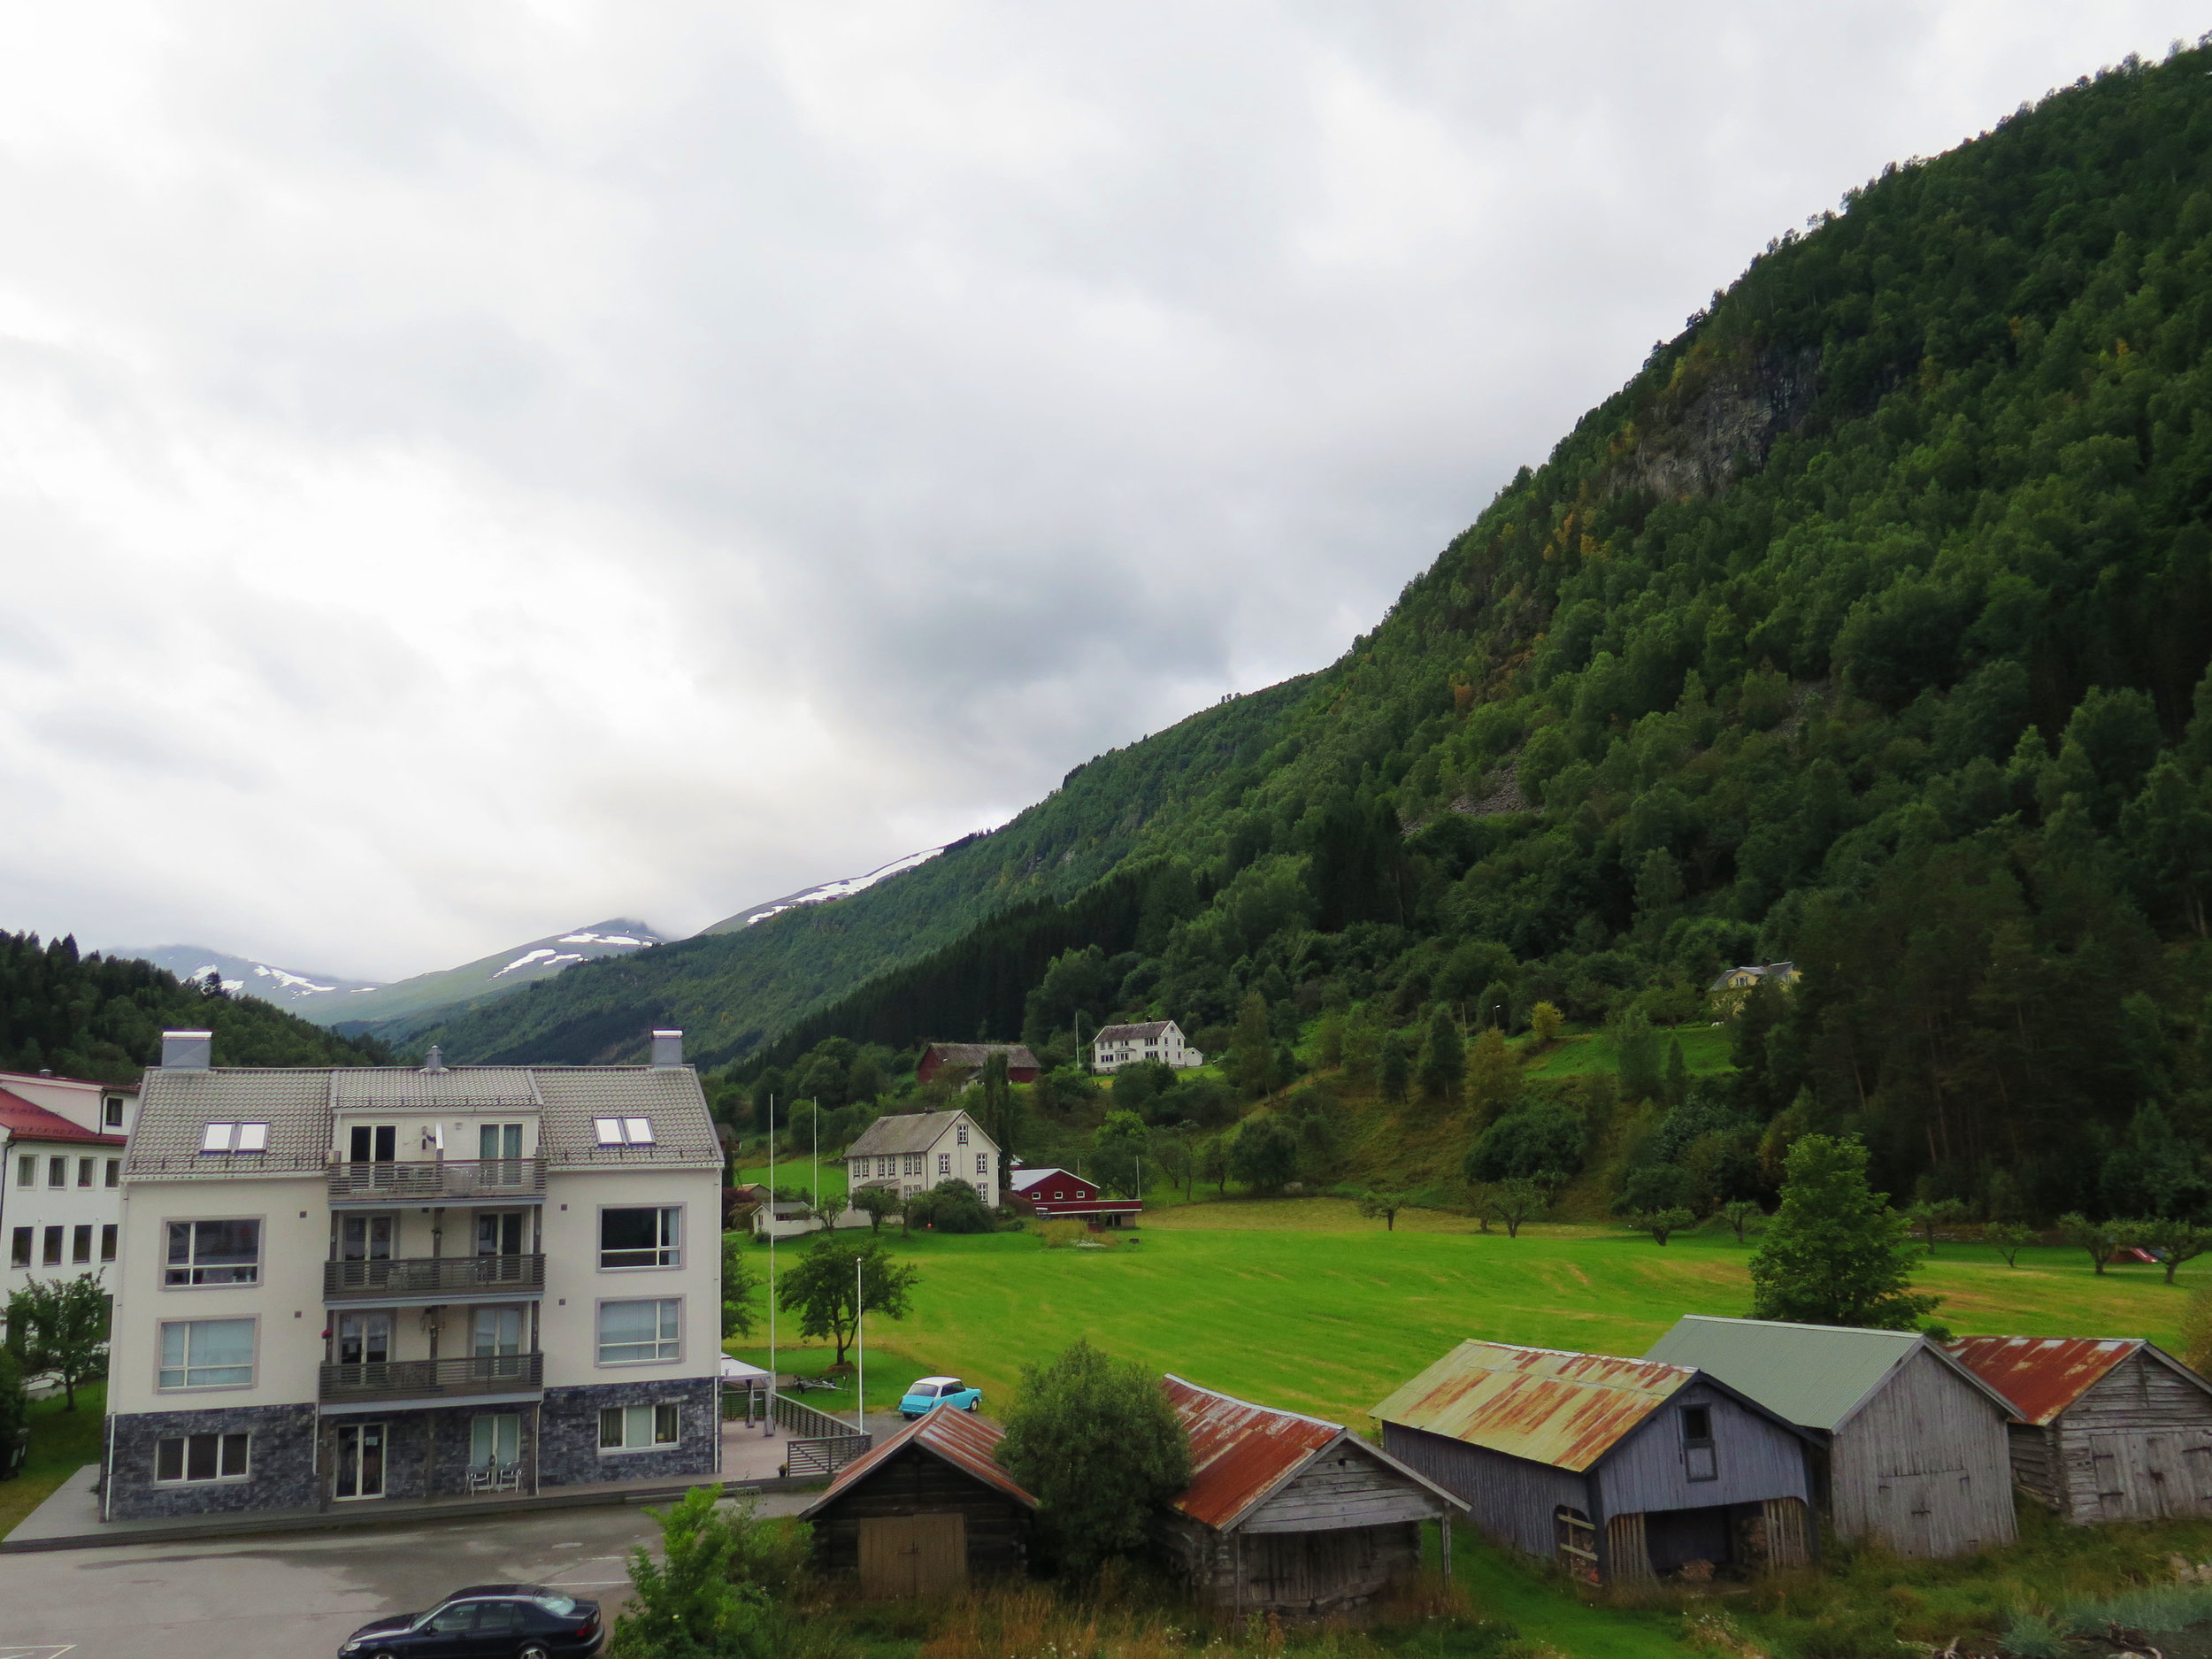 the town of no one - Eidsdal